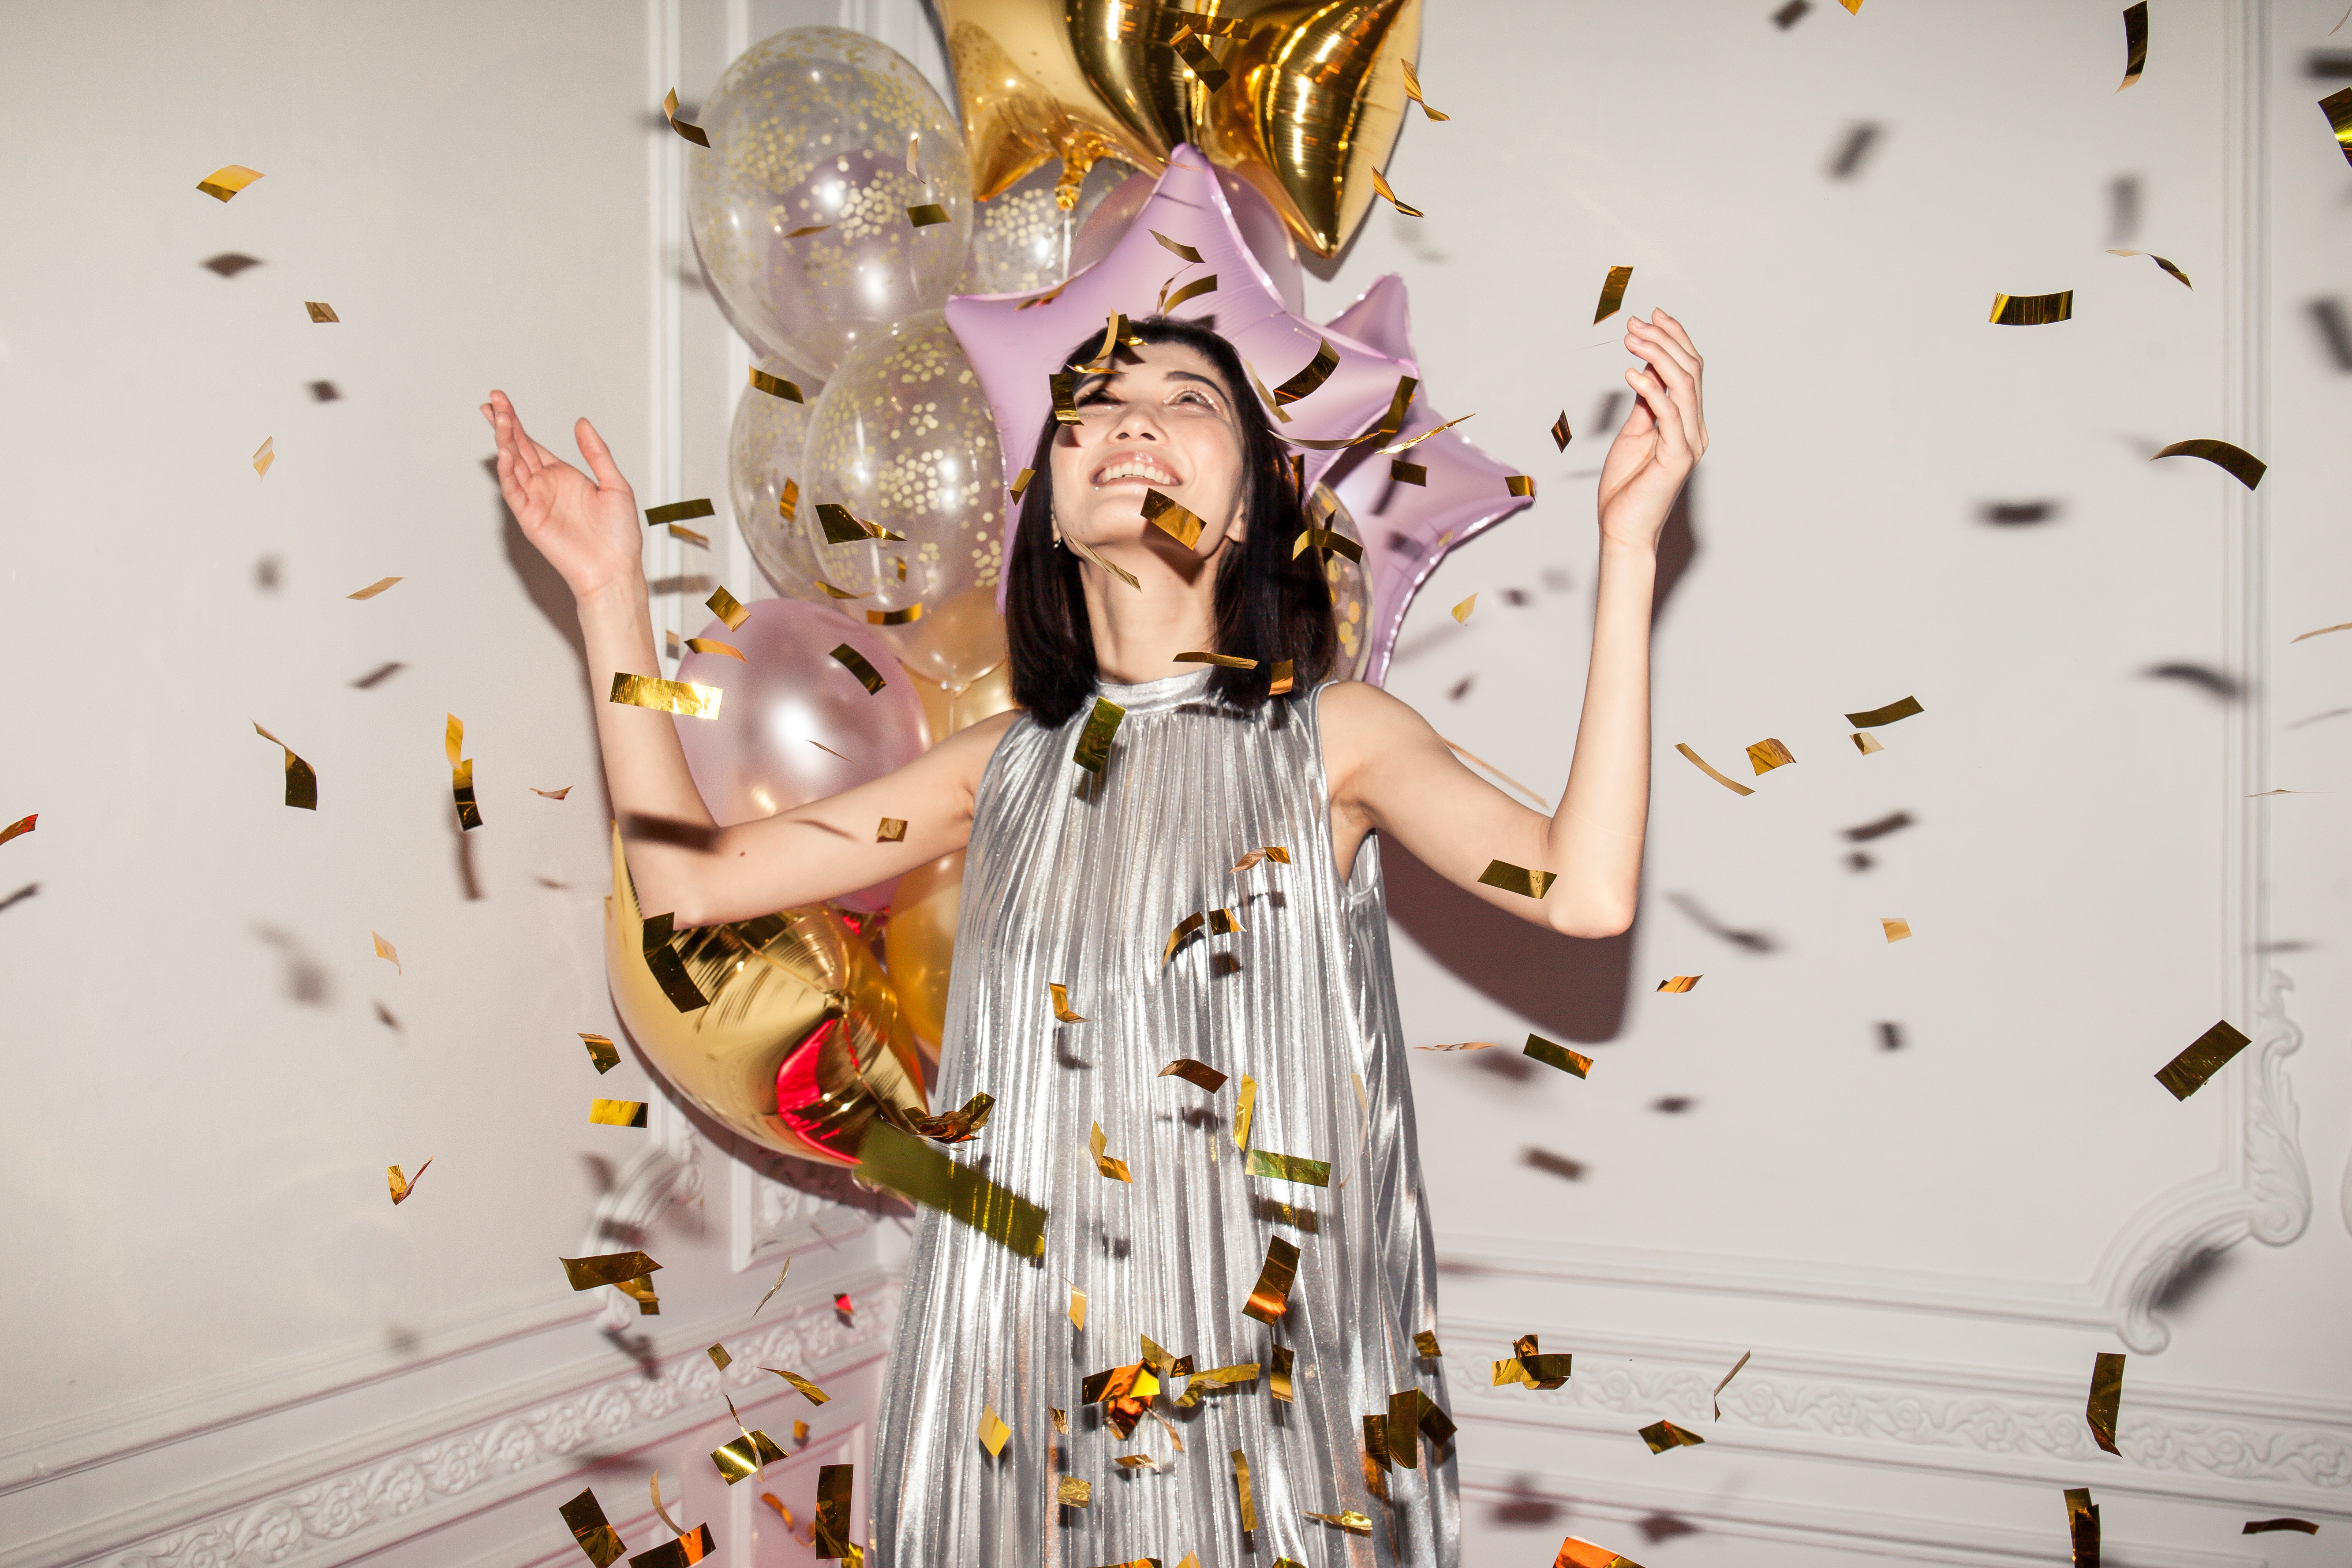 woman-looking-at-falling-confetti-3419692